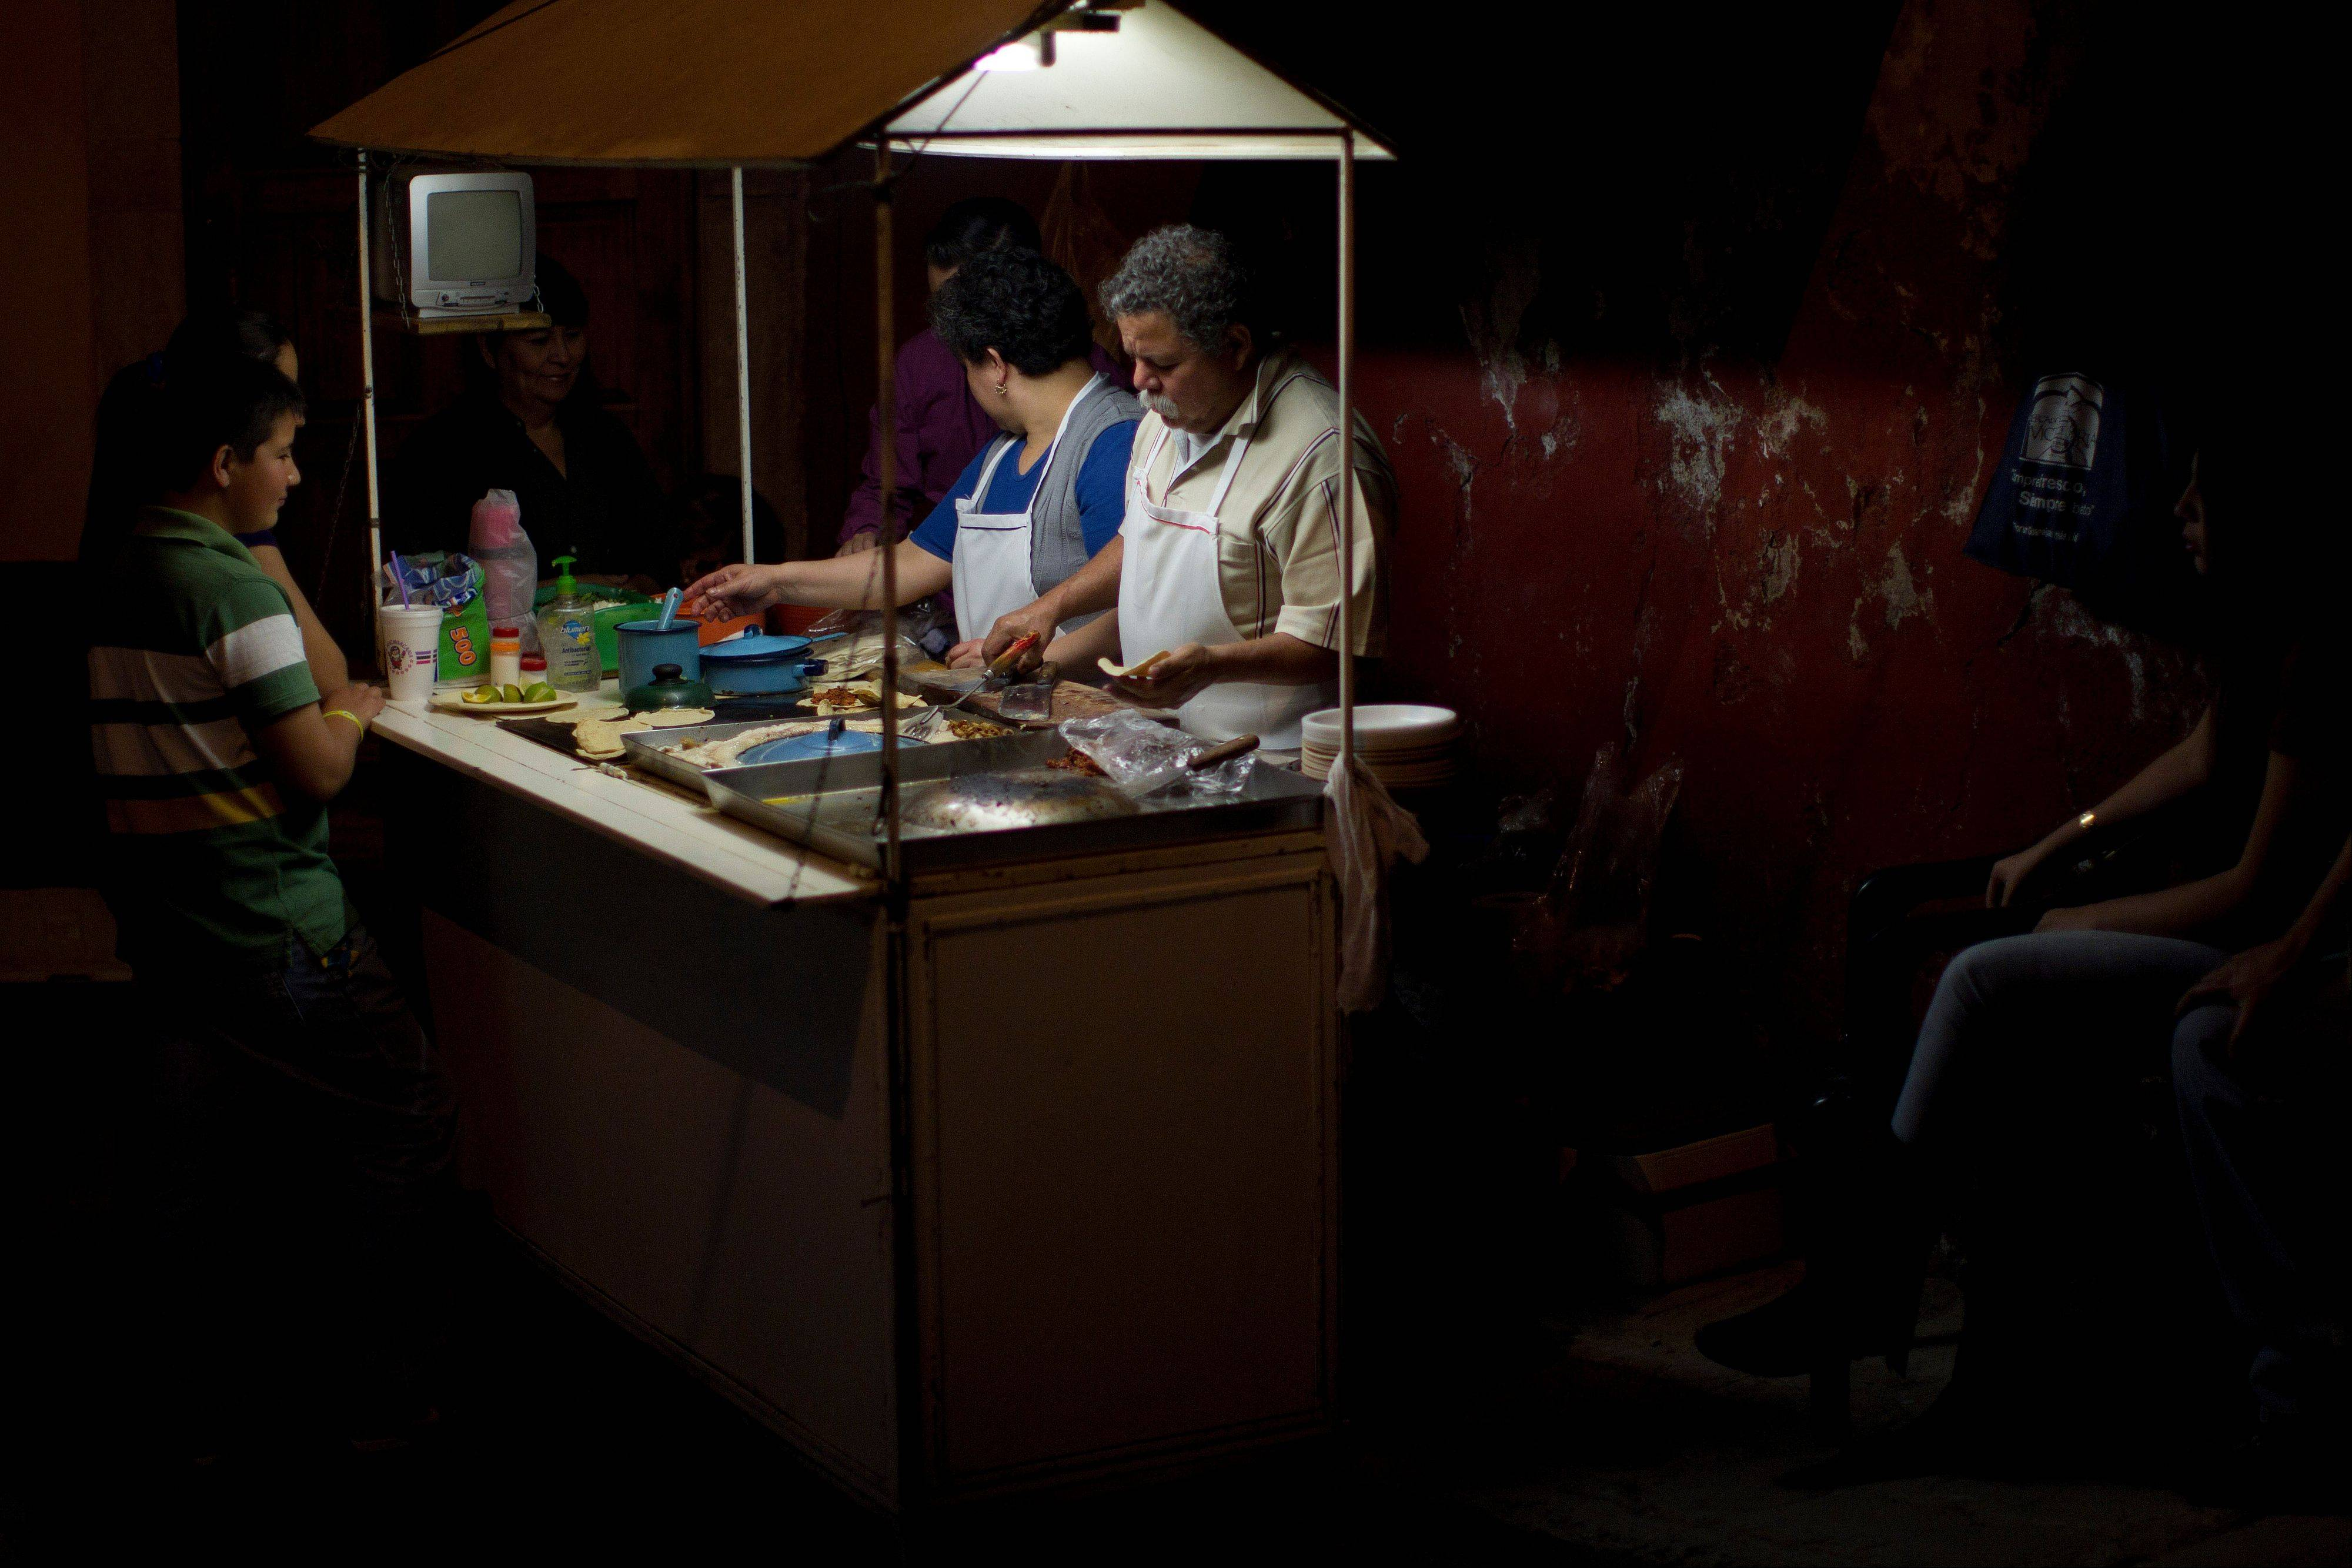 Luisa and Antonio Olmos serve costumers at their 26-year-old taco stand in a passageway at night.